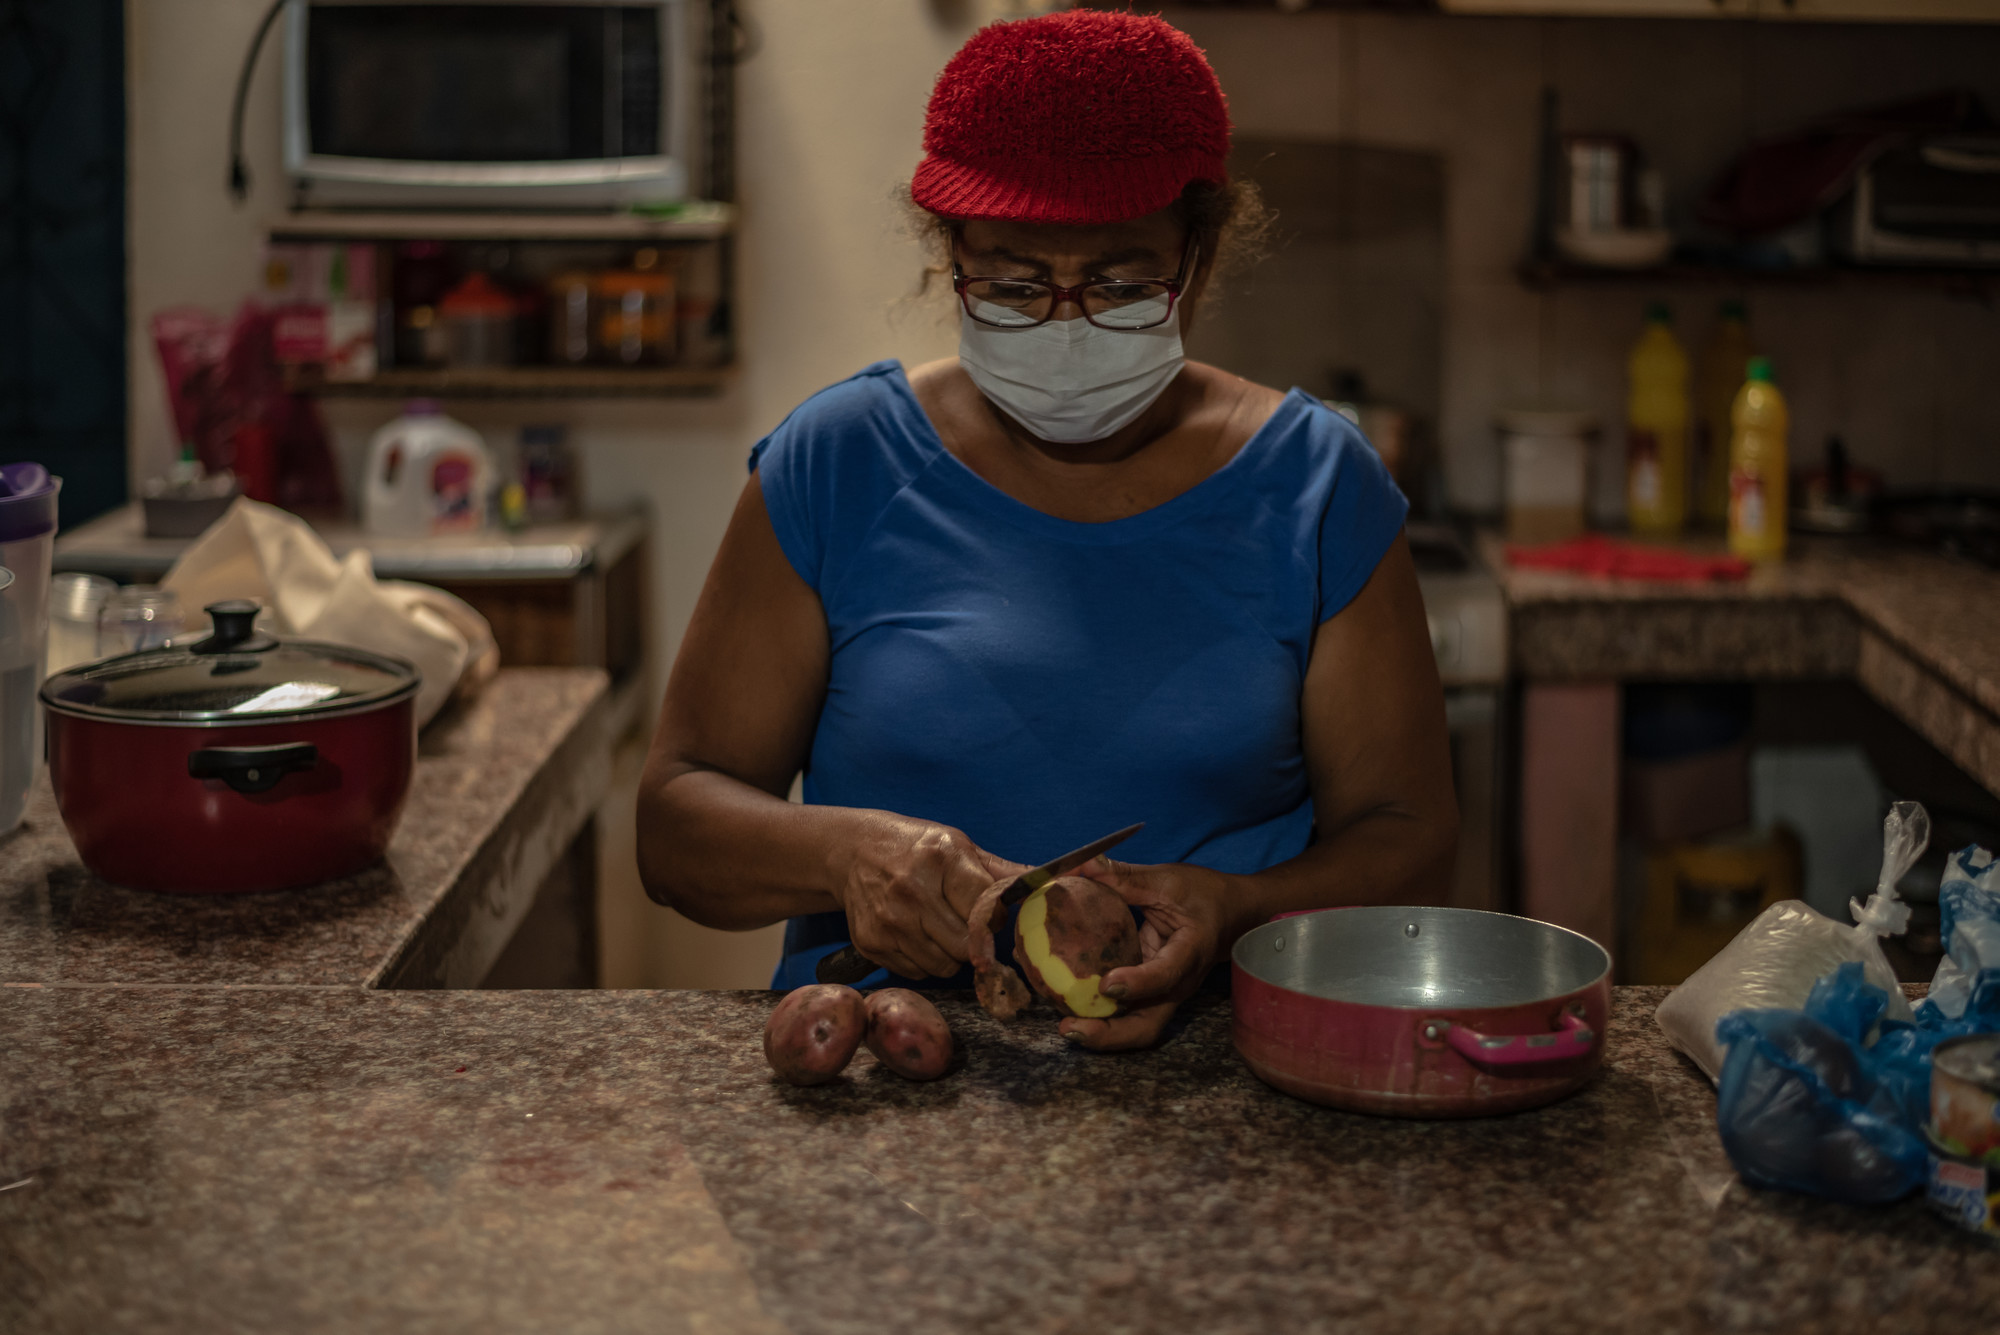 A woman in a face mask peels a potato in a kitchen.